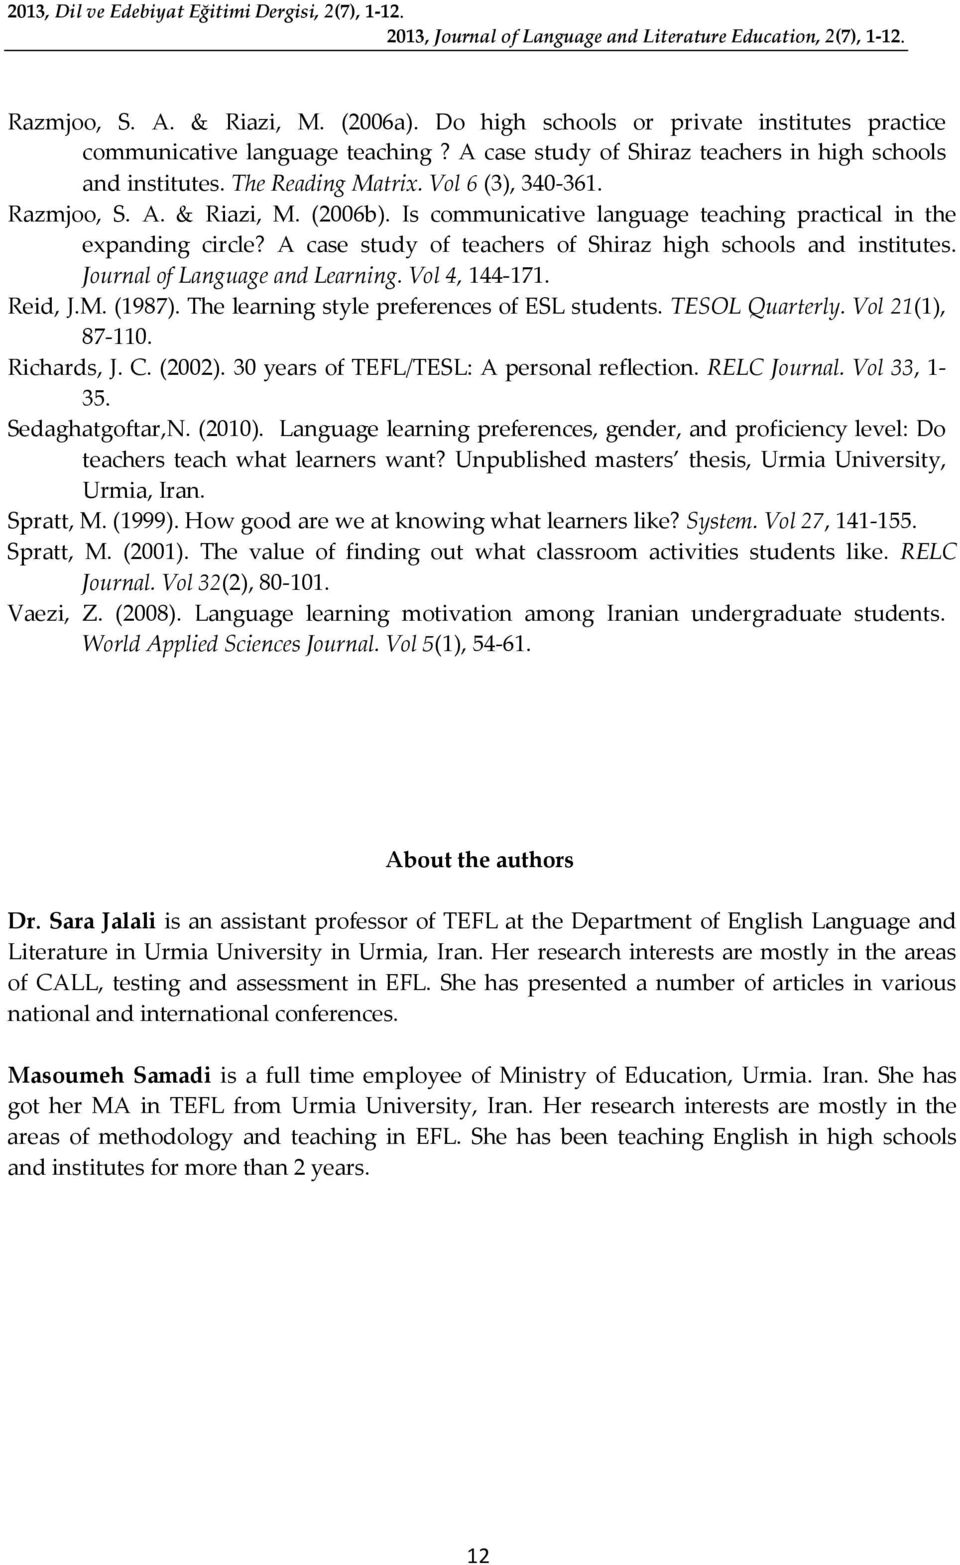 (2006b). Is communicative language teaching practical in the expanding circle? A case study of teachers of Shiraz high schools and institutes. Journal of Language and Learning. Vol 4, 144-171.